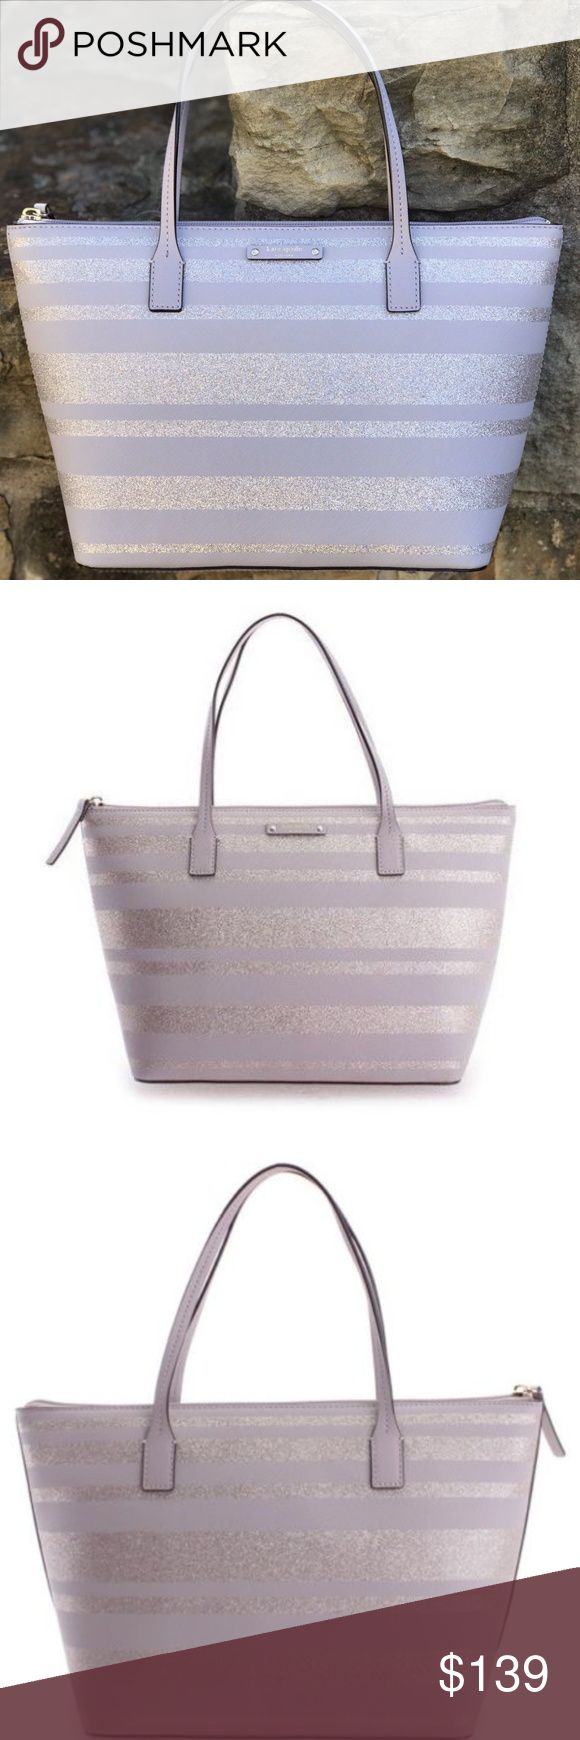 """NWT Kate Spade Hani Haven Lane Neutral Tote Brand New! Authentic Kate Spade New York Hani Haven Lane Tote.  Beautiful Nouveau Neutral Color.  Amazing Safiano Leather and Glitter matierial classic for Kate Spade.  Height 9.5"""" x Width 11"""" (bottom) 14.5"""" (top) x Depth 5""""  STRAP DROP: 6""""  HARDWARE: 14k Gold Plated  CLOSURE: Full Zipper  INSIDE: 2 Slots & 1 Zipper  This bag debuted September 2017.  Grab this Hani Haven Lane Neutral Tote while they last. kate spade Bags Totes"""